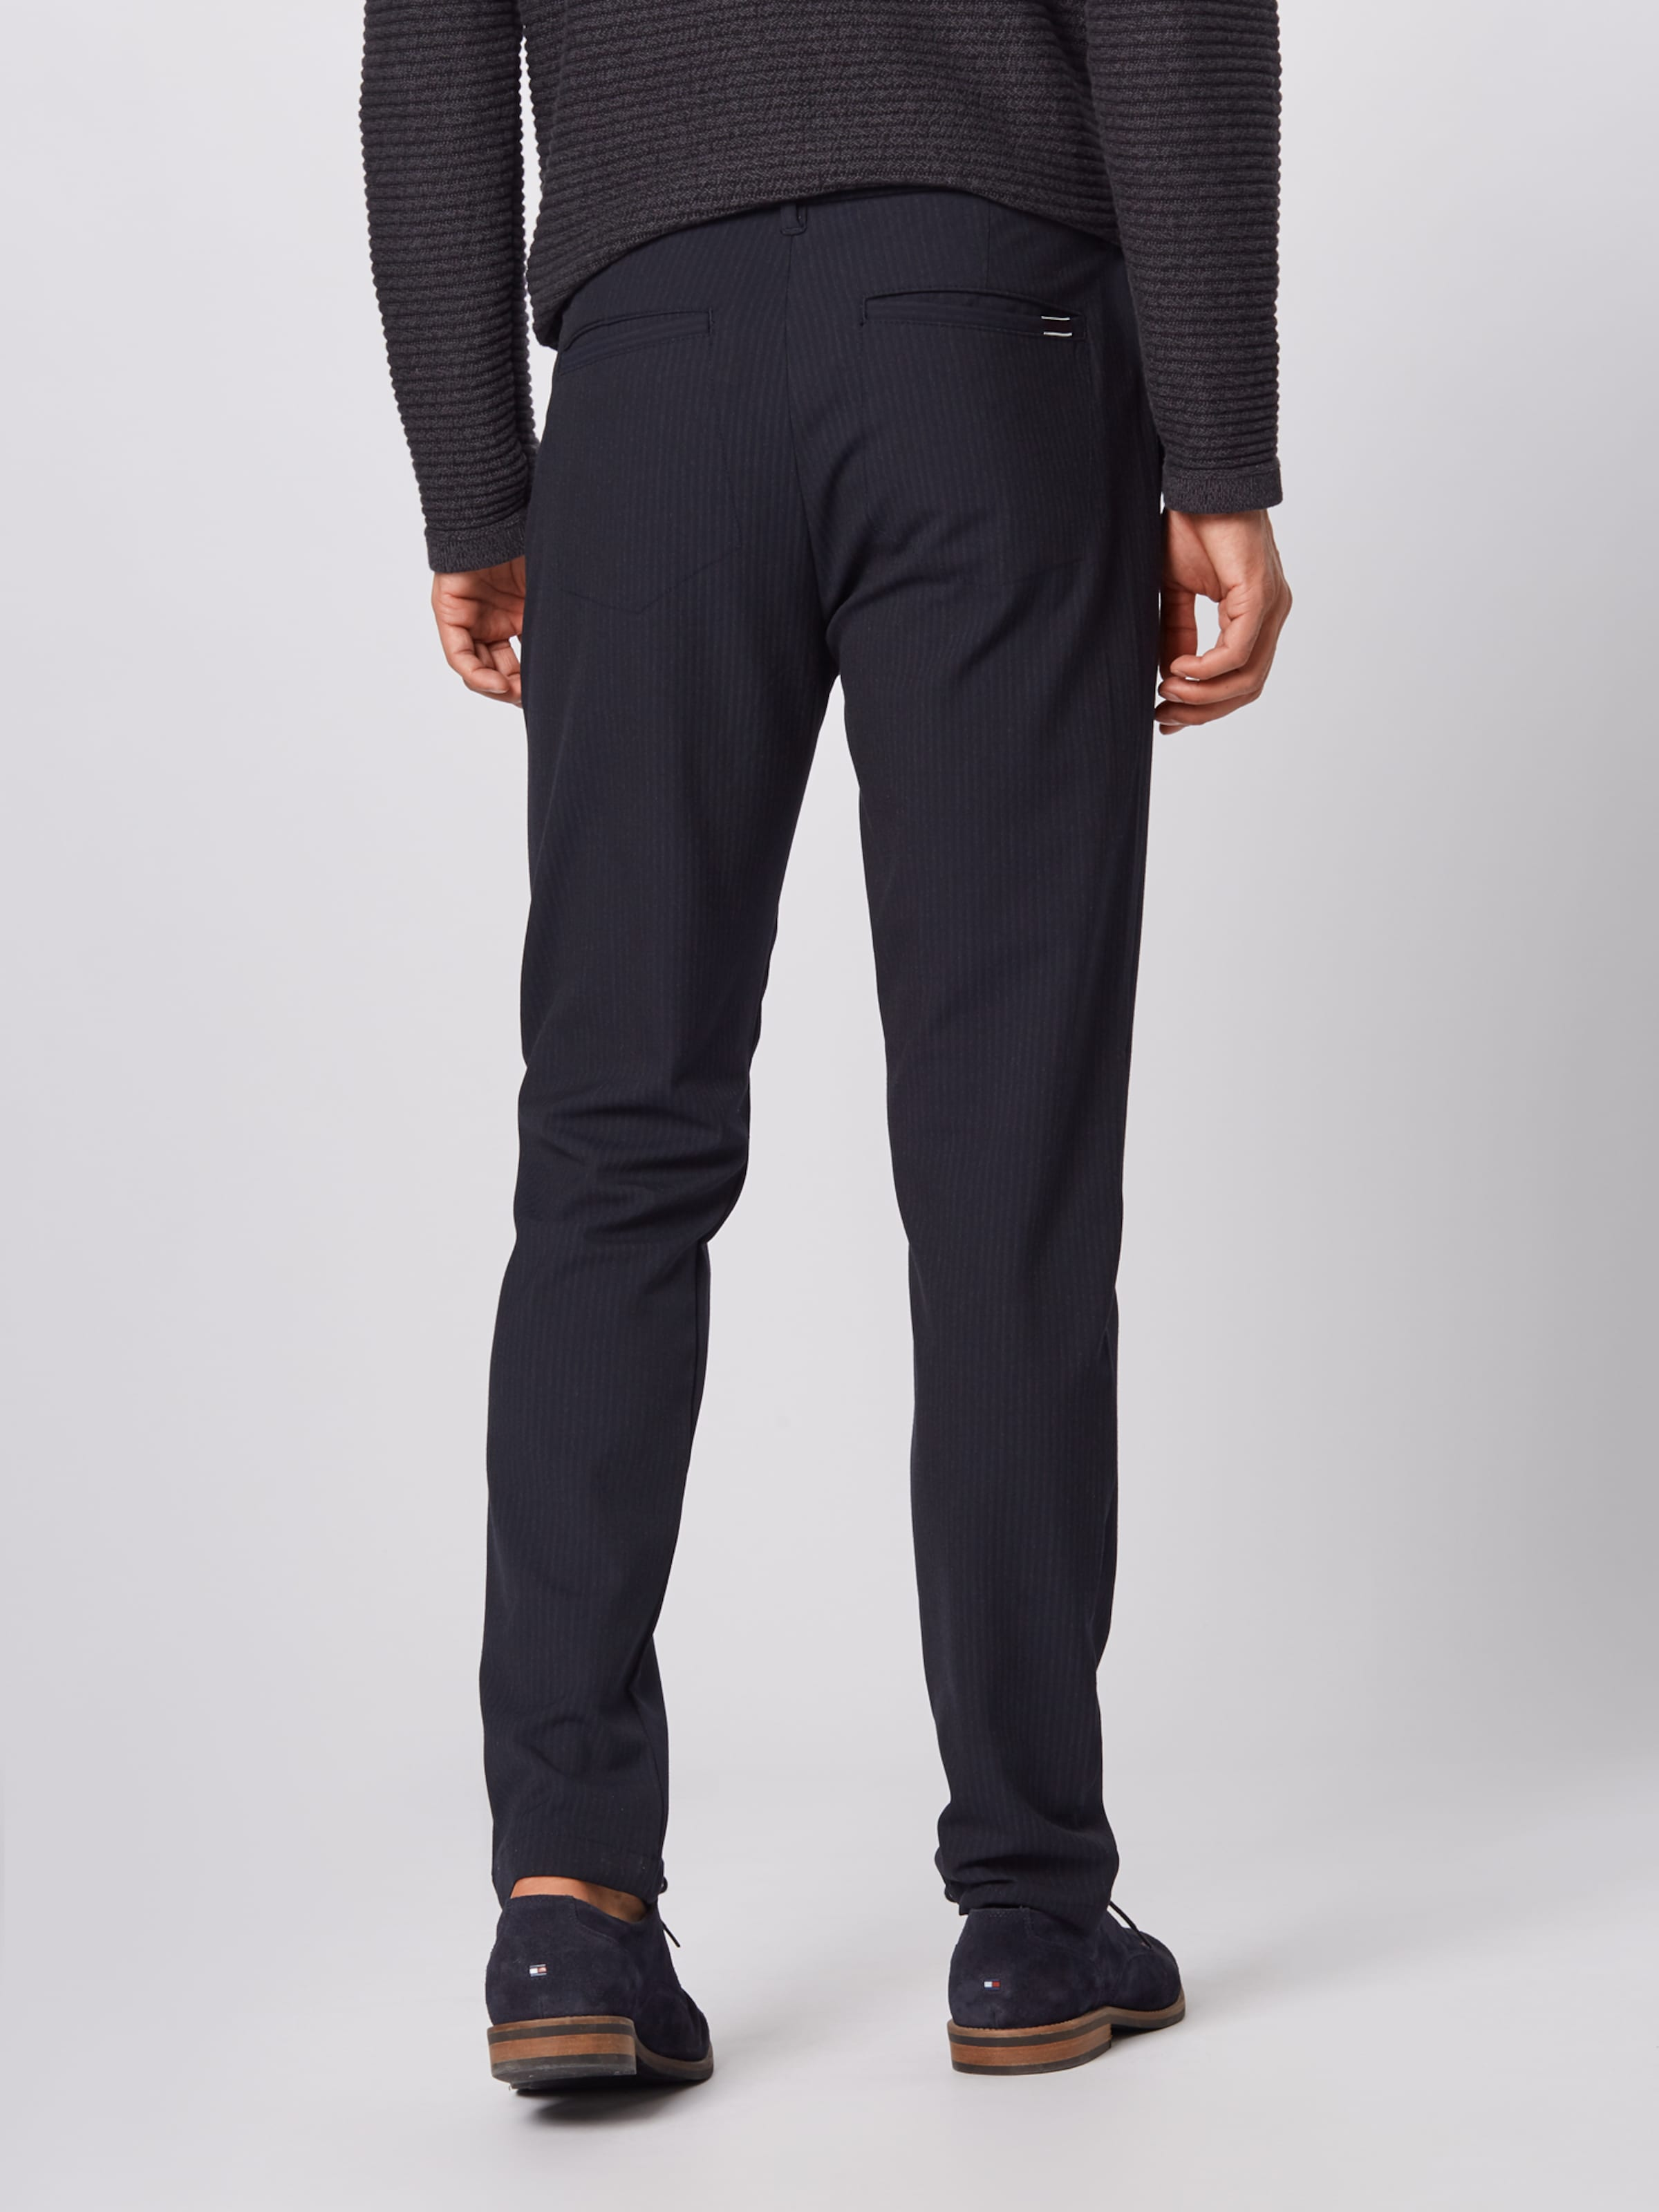 Casual Pantalon Friday Pantalon Friday En En Casual Noir Noir W9E2IDH